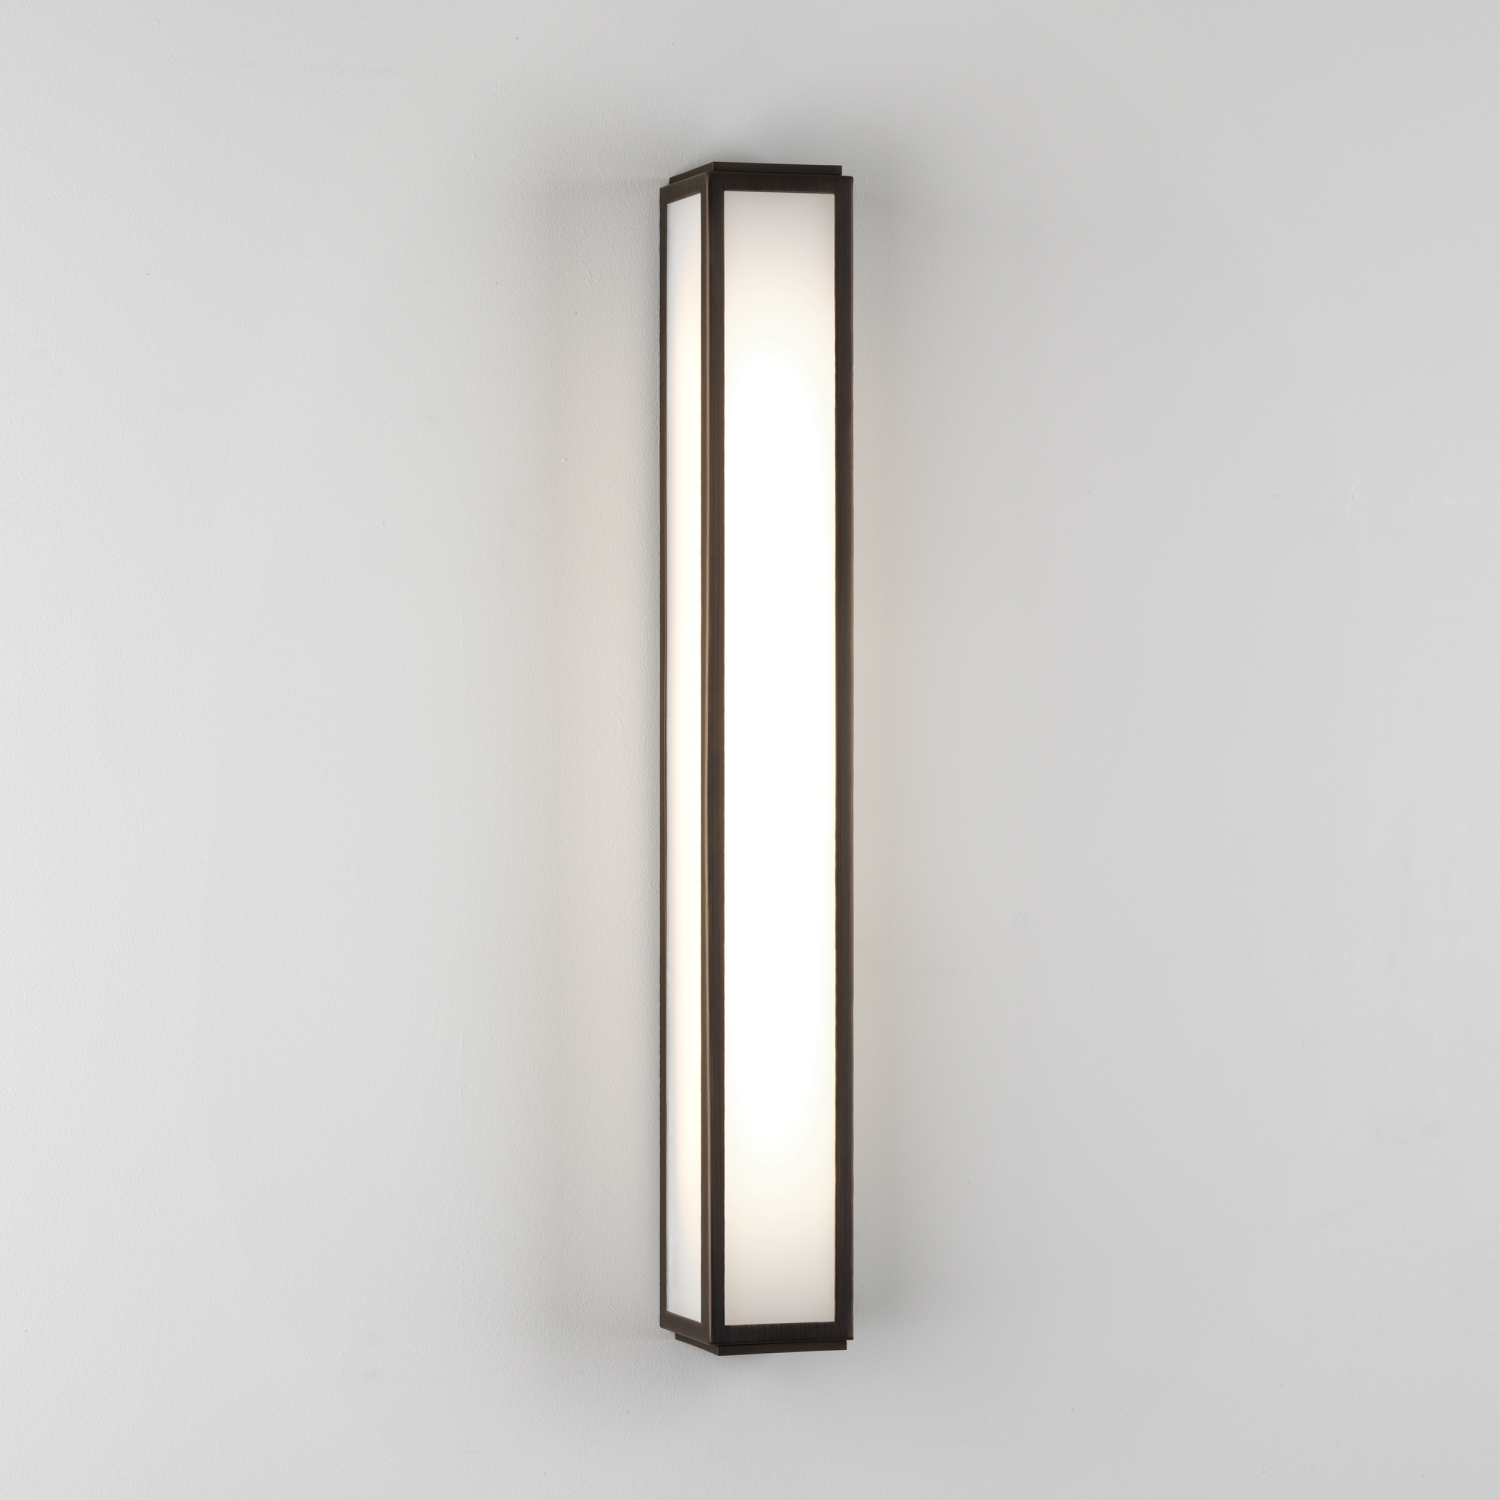 ASTRO Mashiko 600 Bathroom fluorescent wall light 24W T5 (not supplied) Thumbnail 1